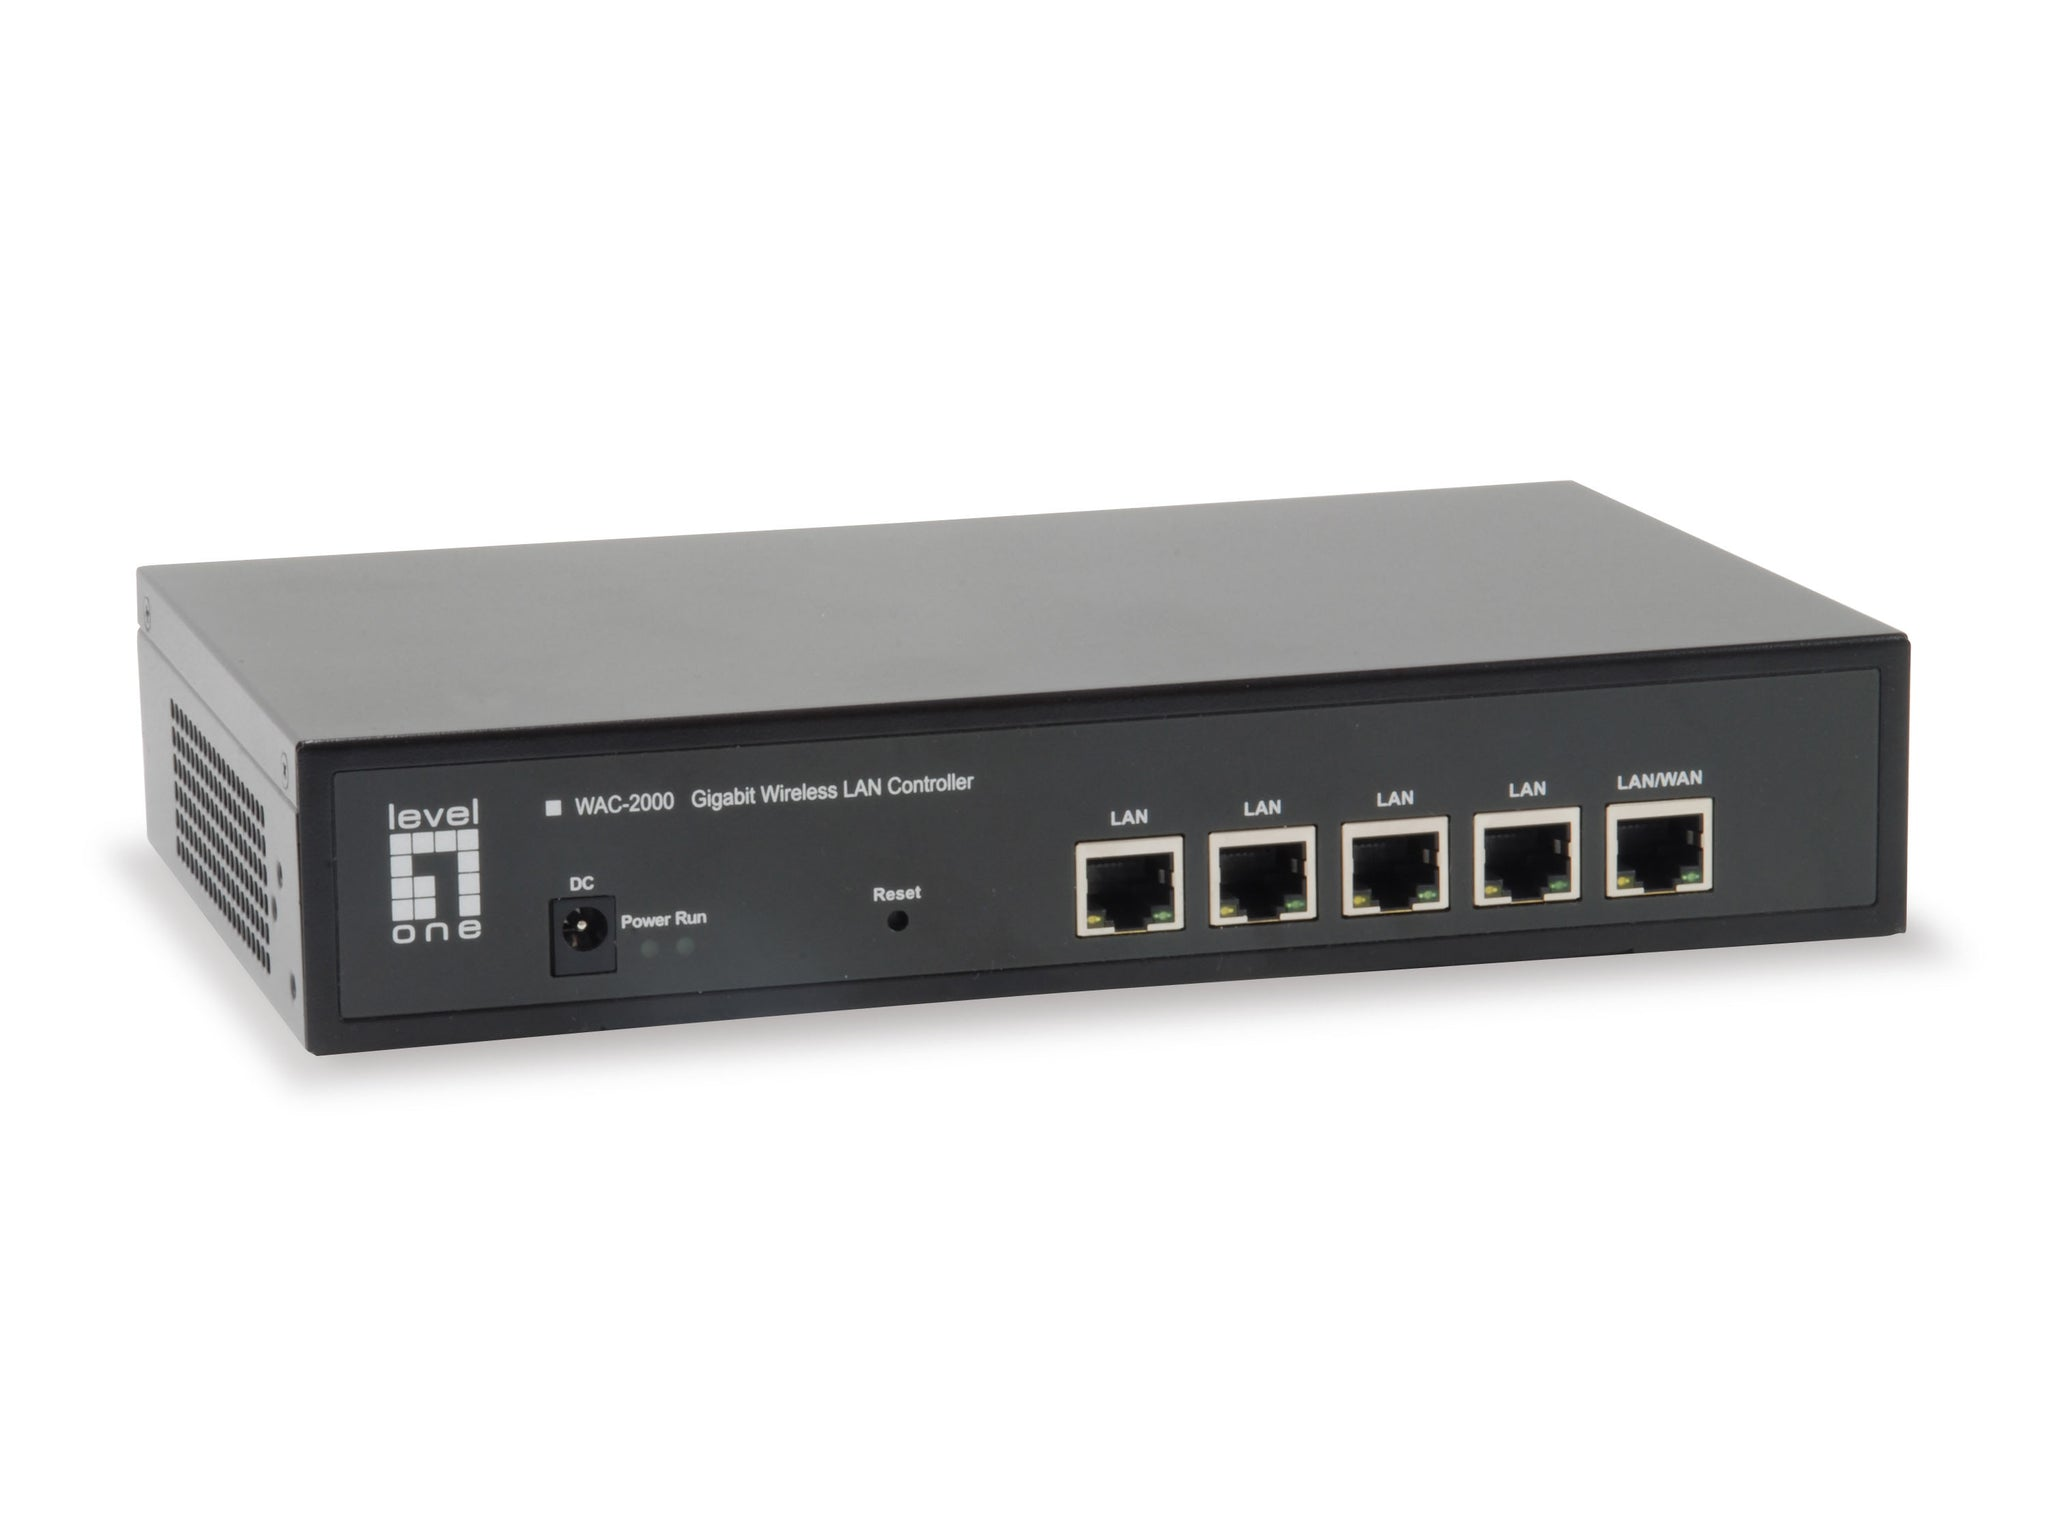 WAC-2000 Gigabit Wireless LAN Controller